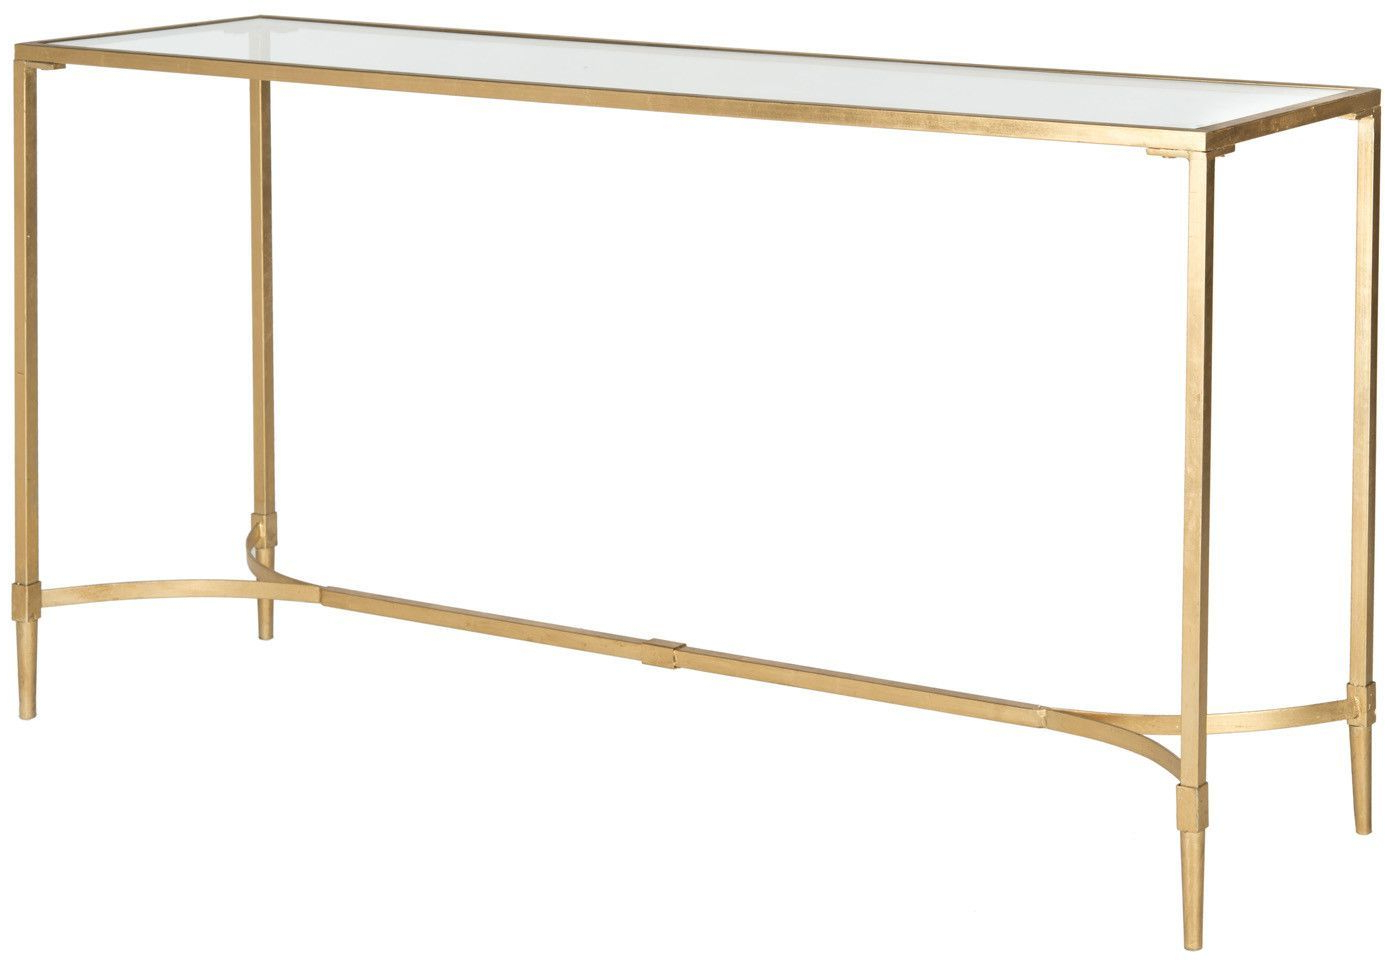 Consoles, Glass And Entry Hall Throughout Elke Glass Console Tables With Brass Base (View 16 of 20)